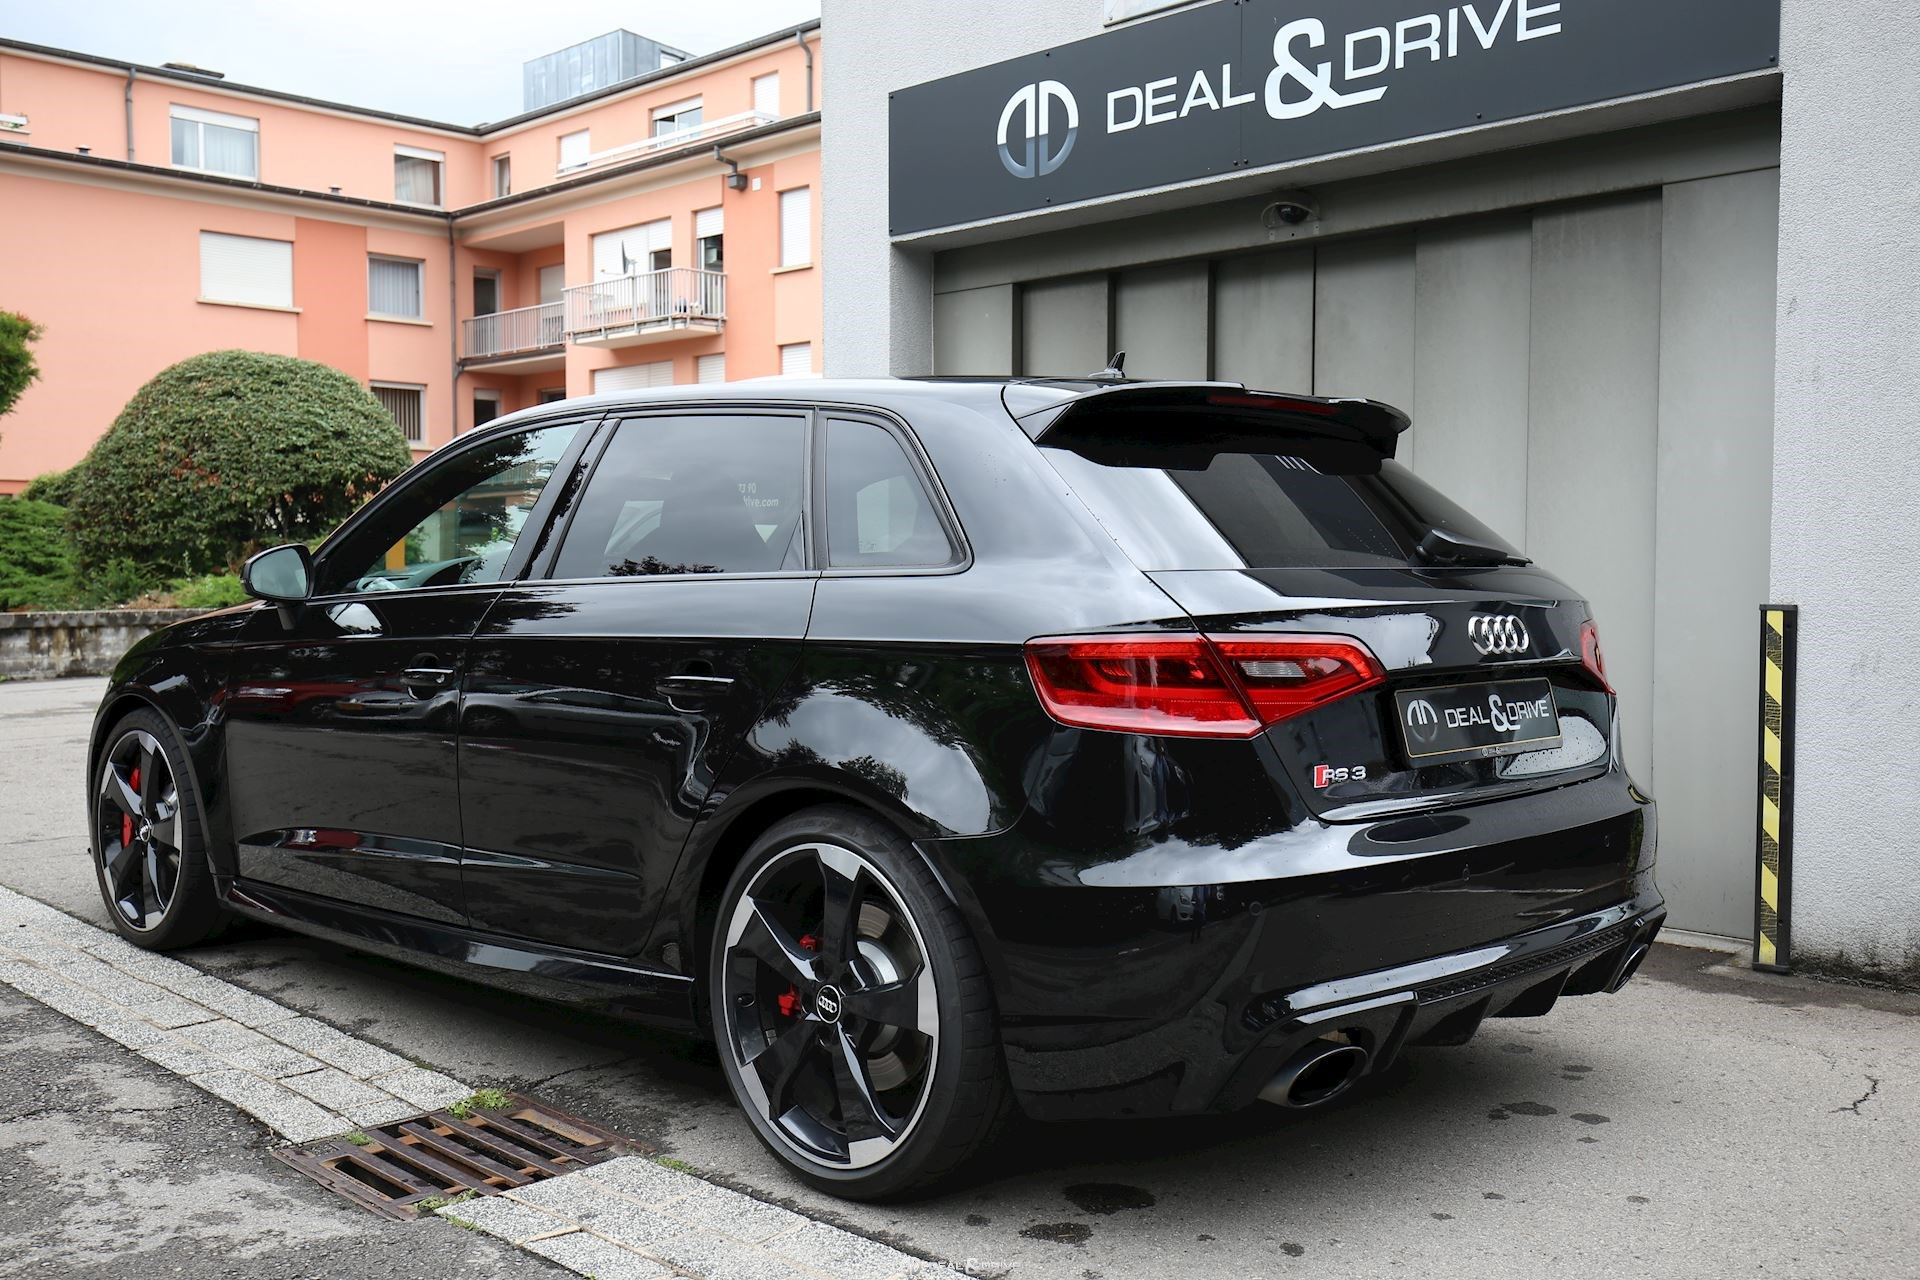 audi rs3 sportback 2 5 tfsi quattro s tronic deal drive. Black Bedroom Furniture Sets. Home Design Ideas